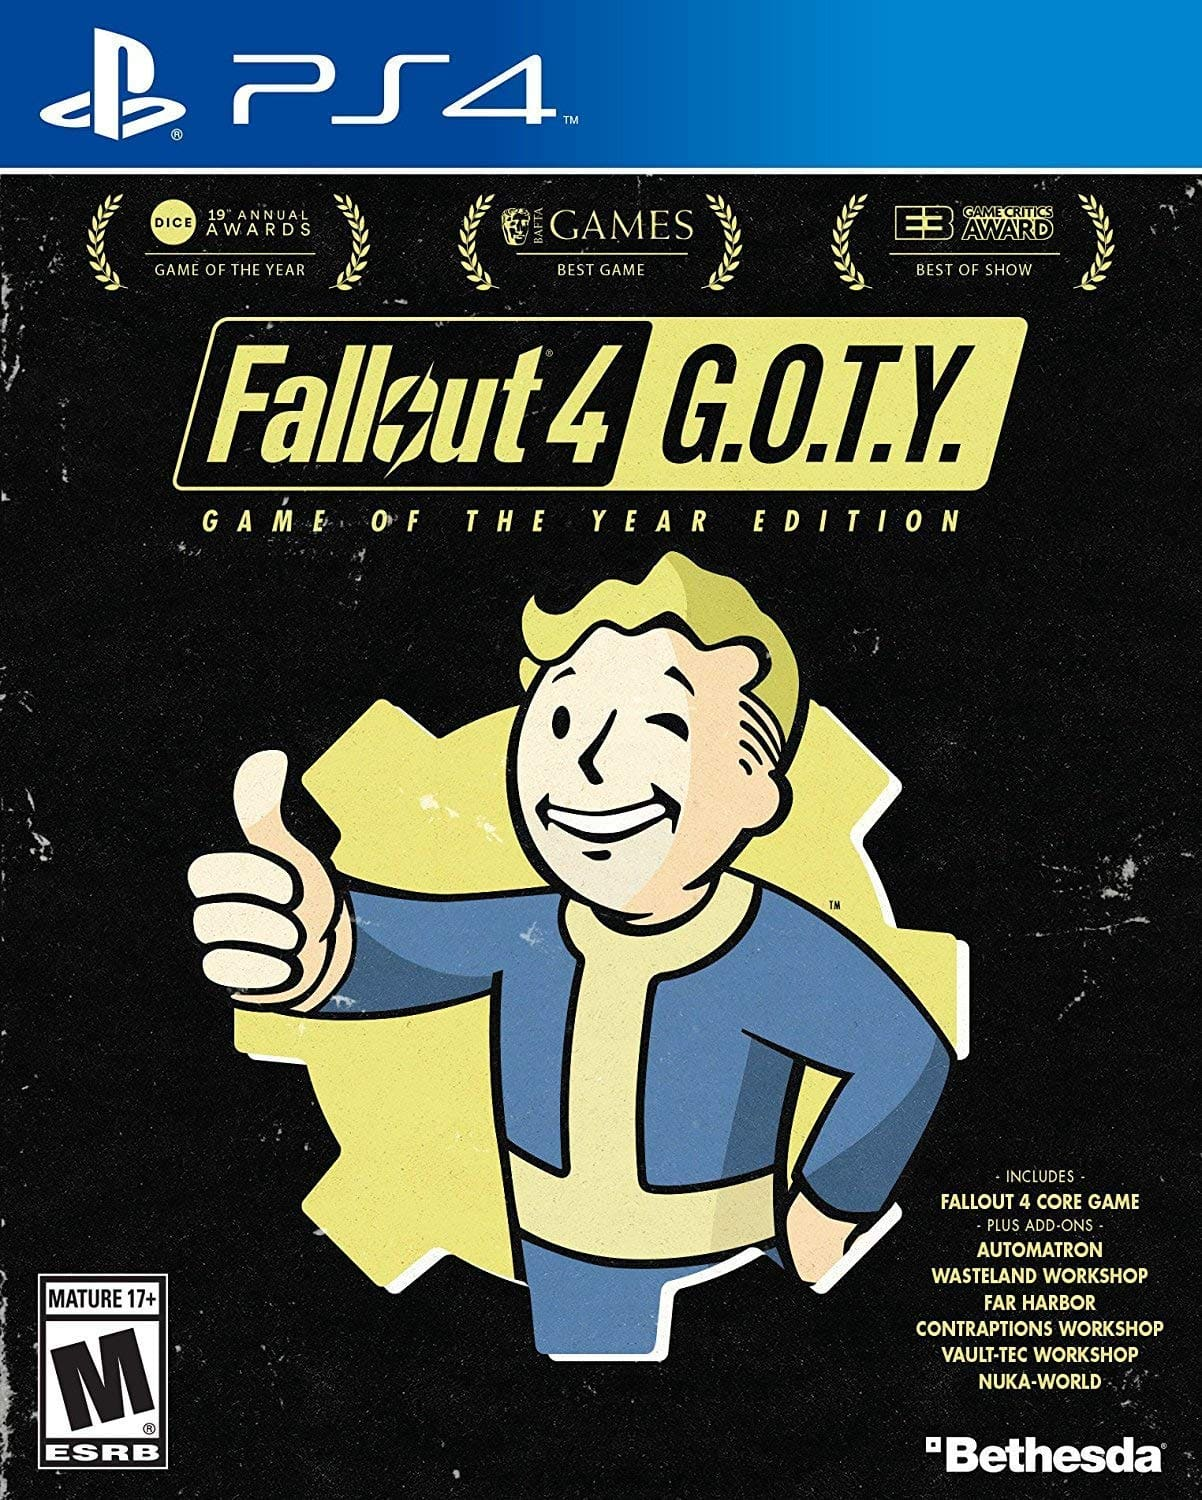 Fallout 4 GOTY (PS4, XB1) Amazon, Best Buy, $25